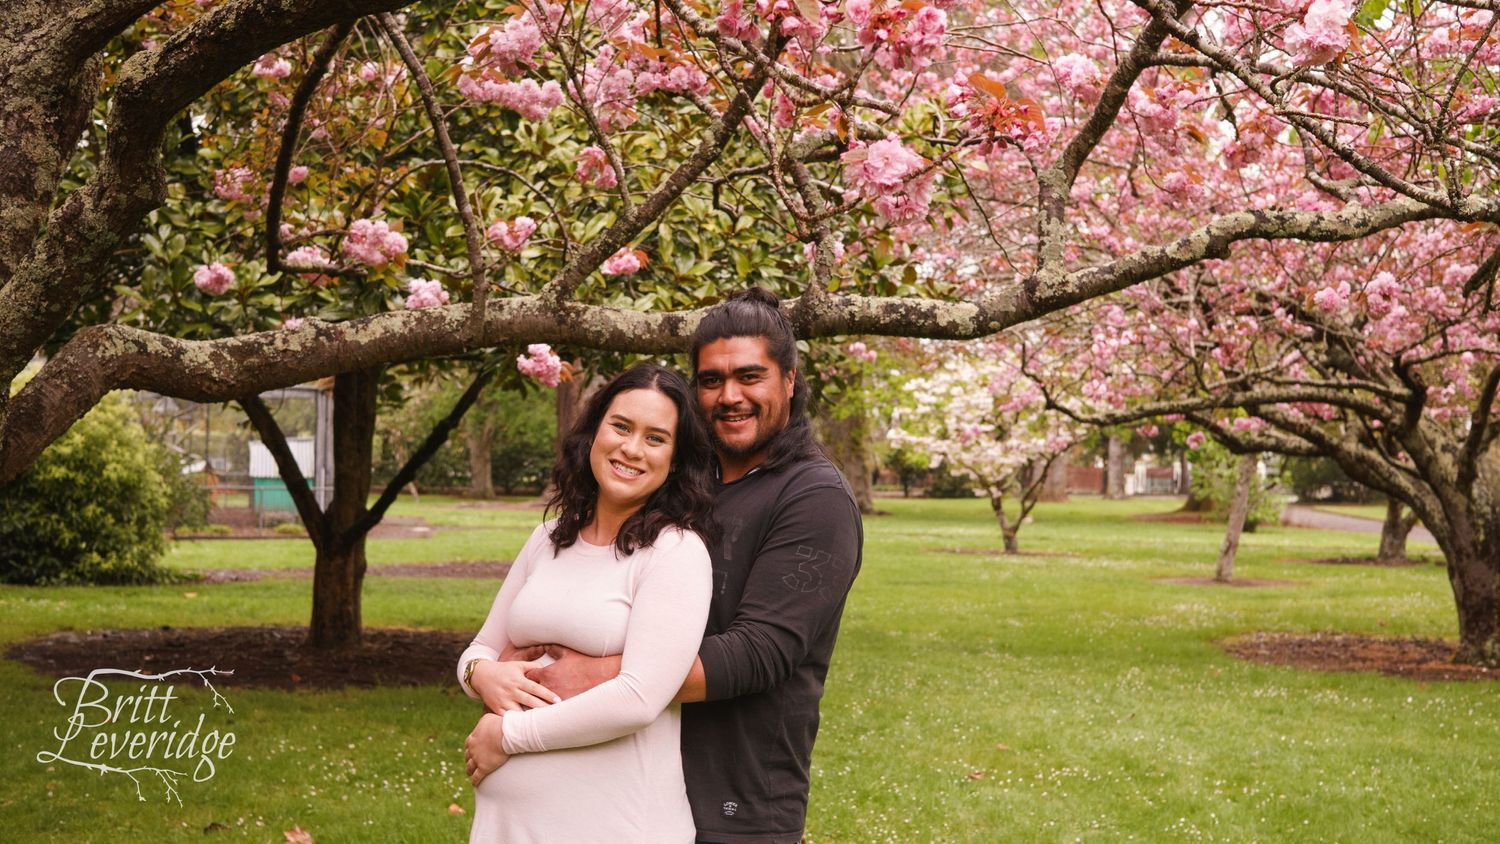 Pregnant lady with partner in front of flowering pink tree